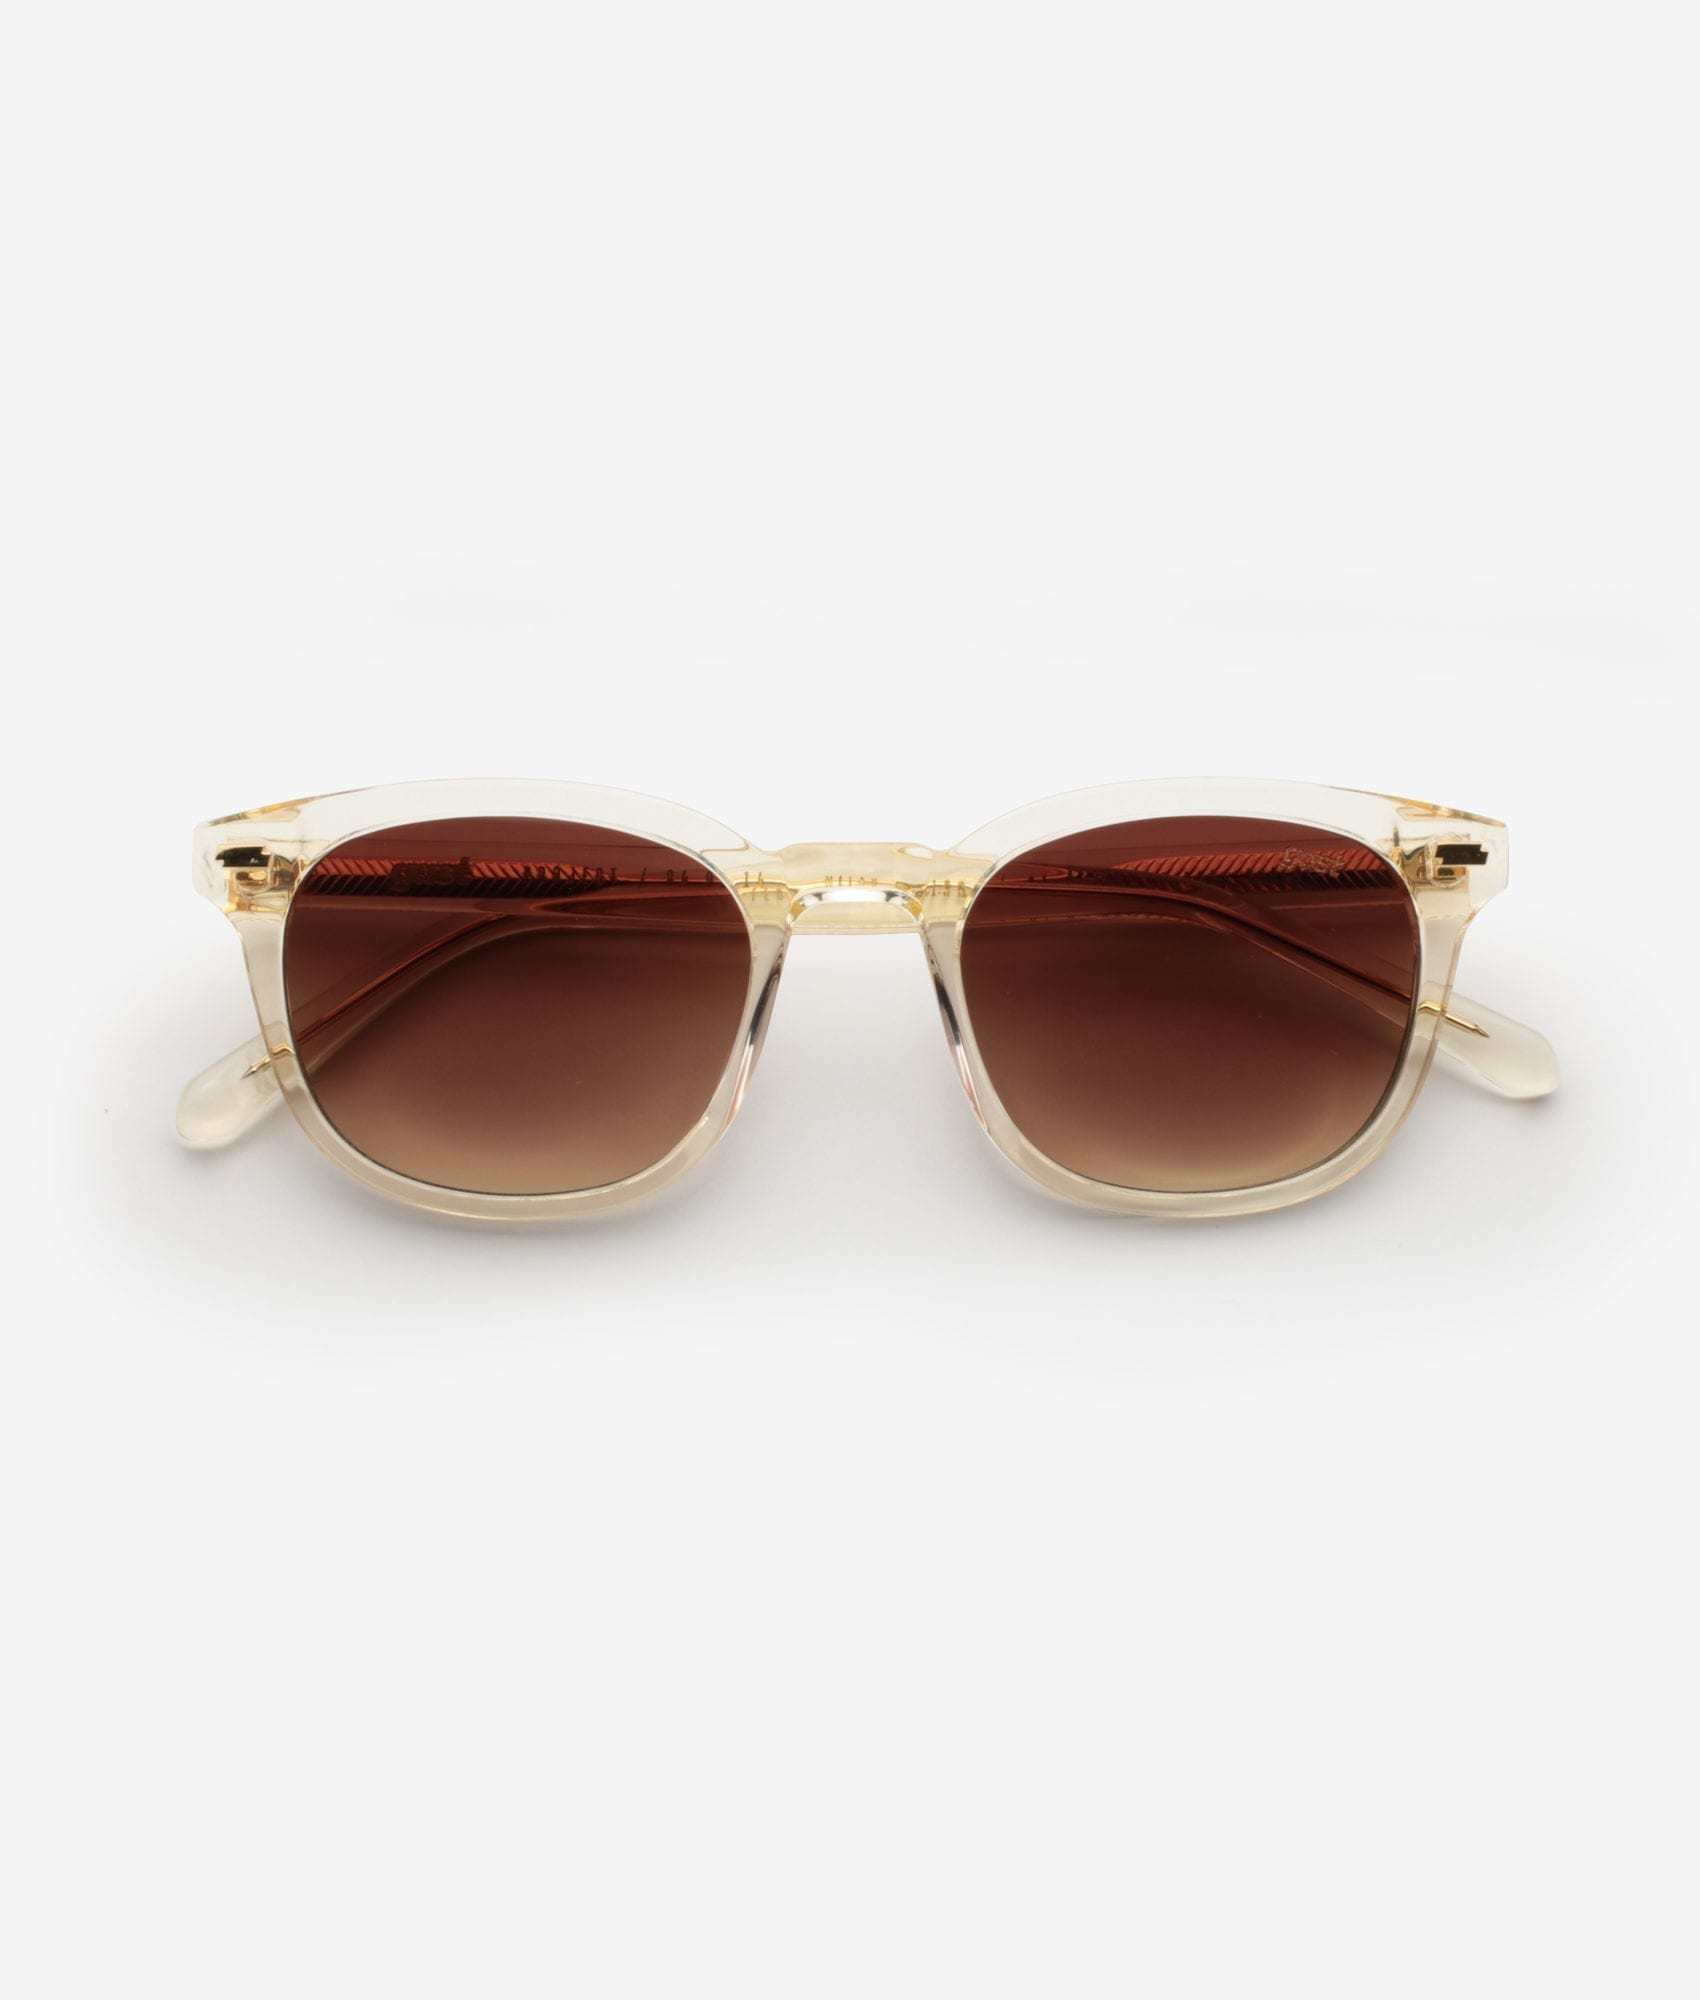 FED Champagne Gast Sunglasses